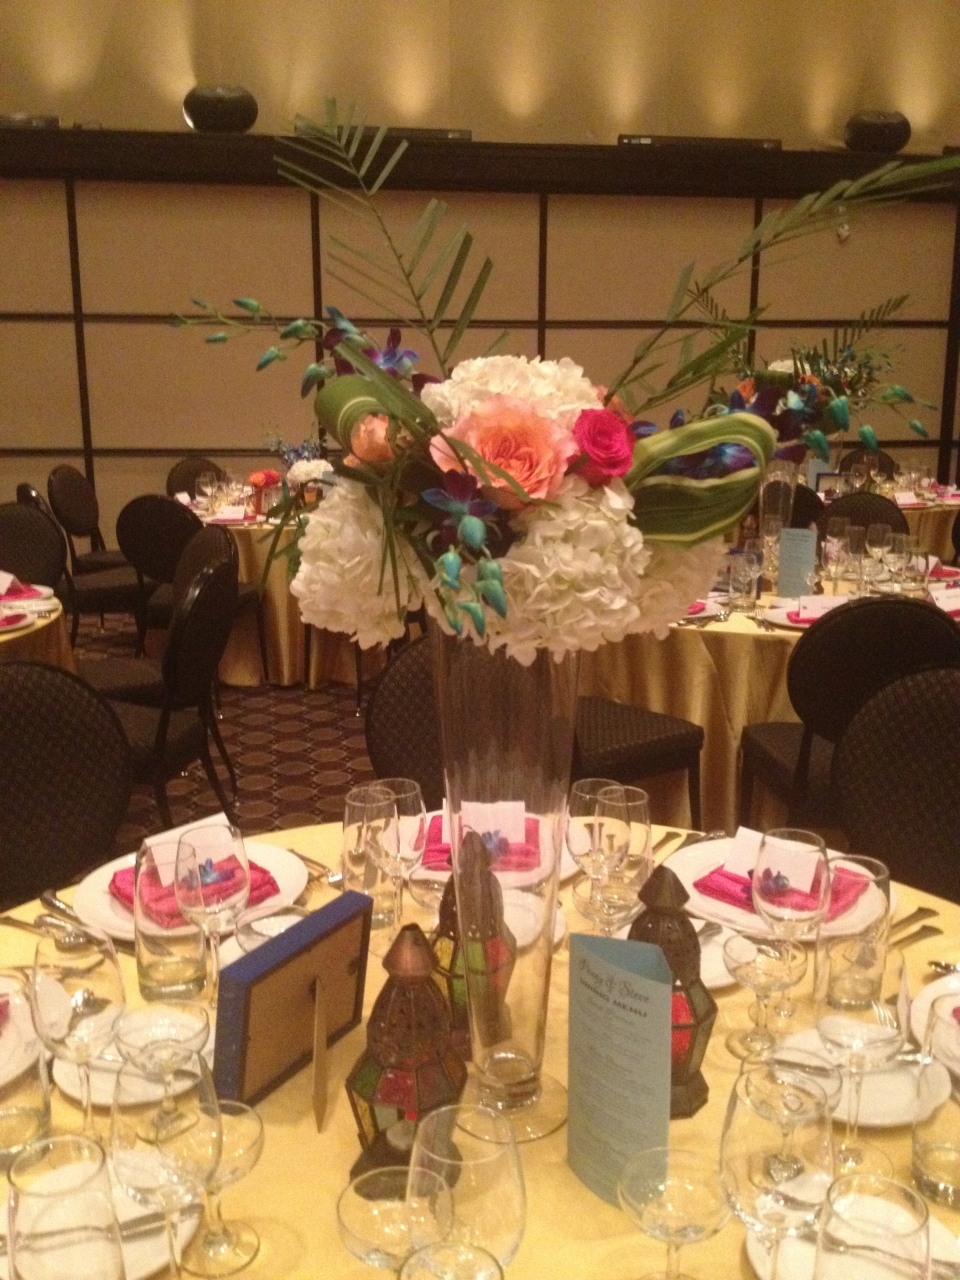 Tall centerpiece of hydrangea, roses, dendrobium orchids and palm fronds